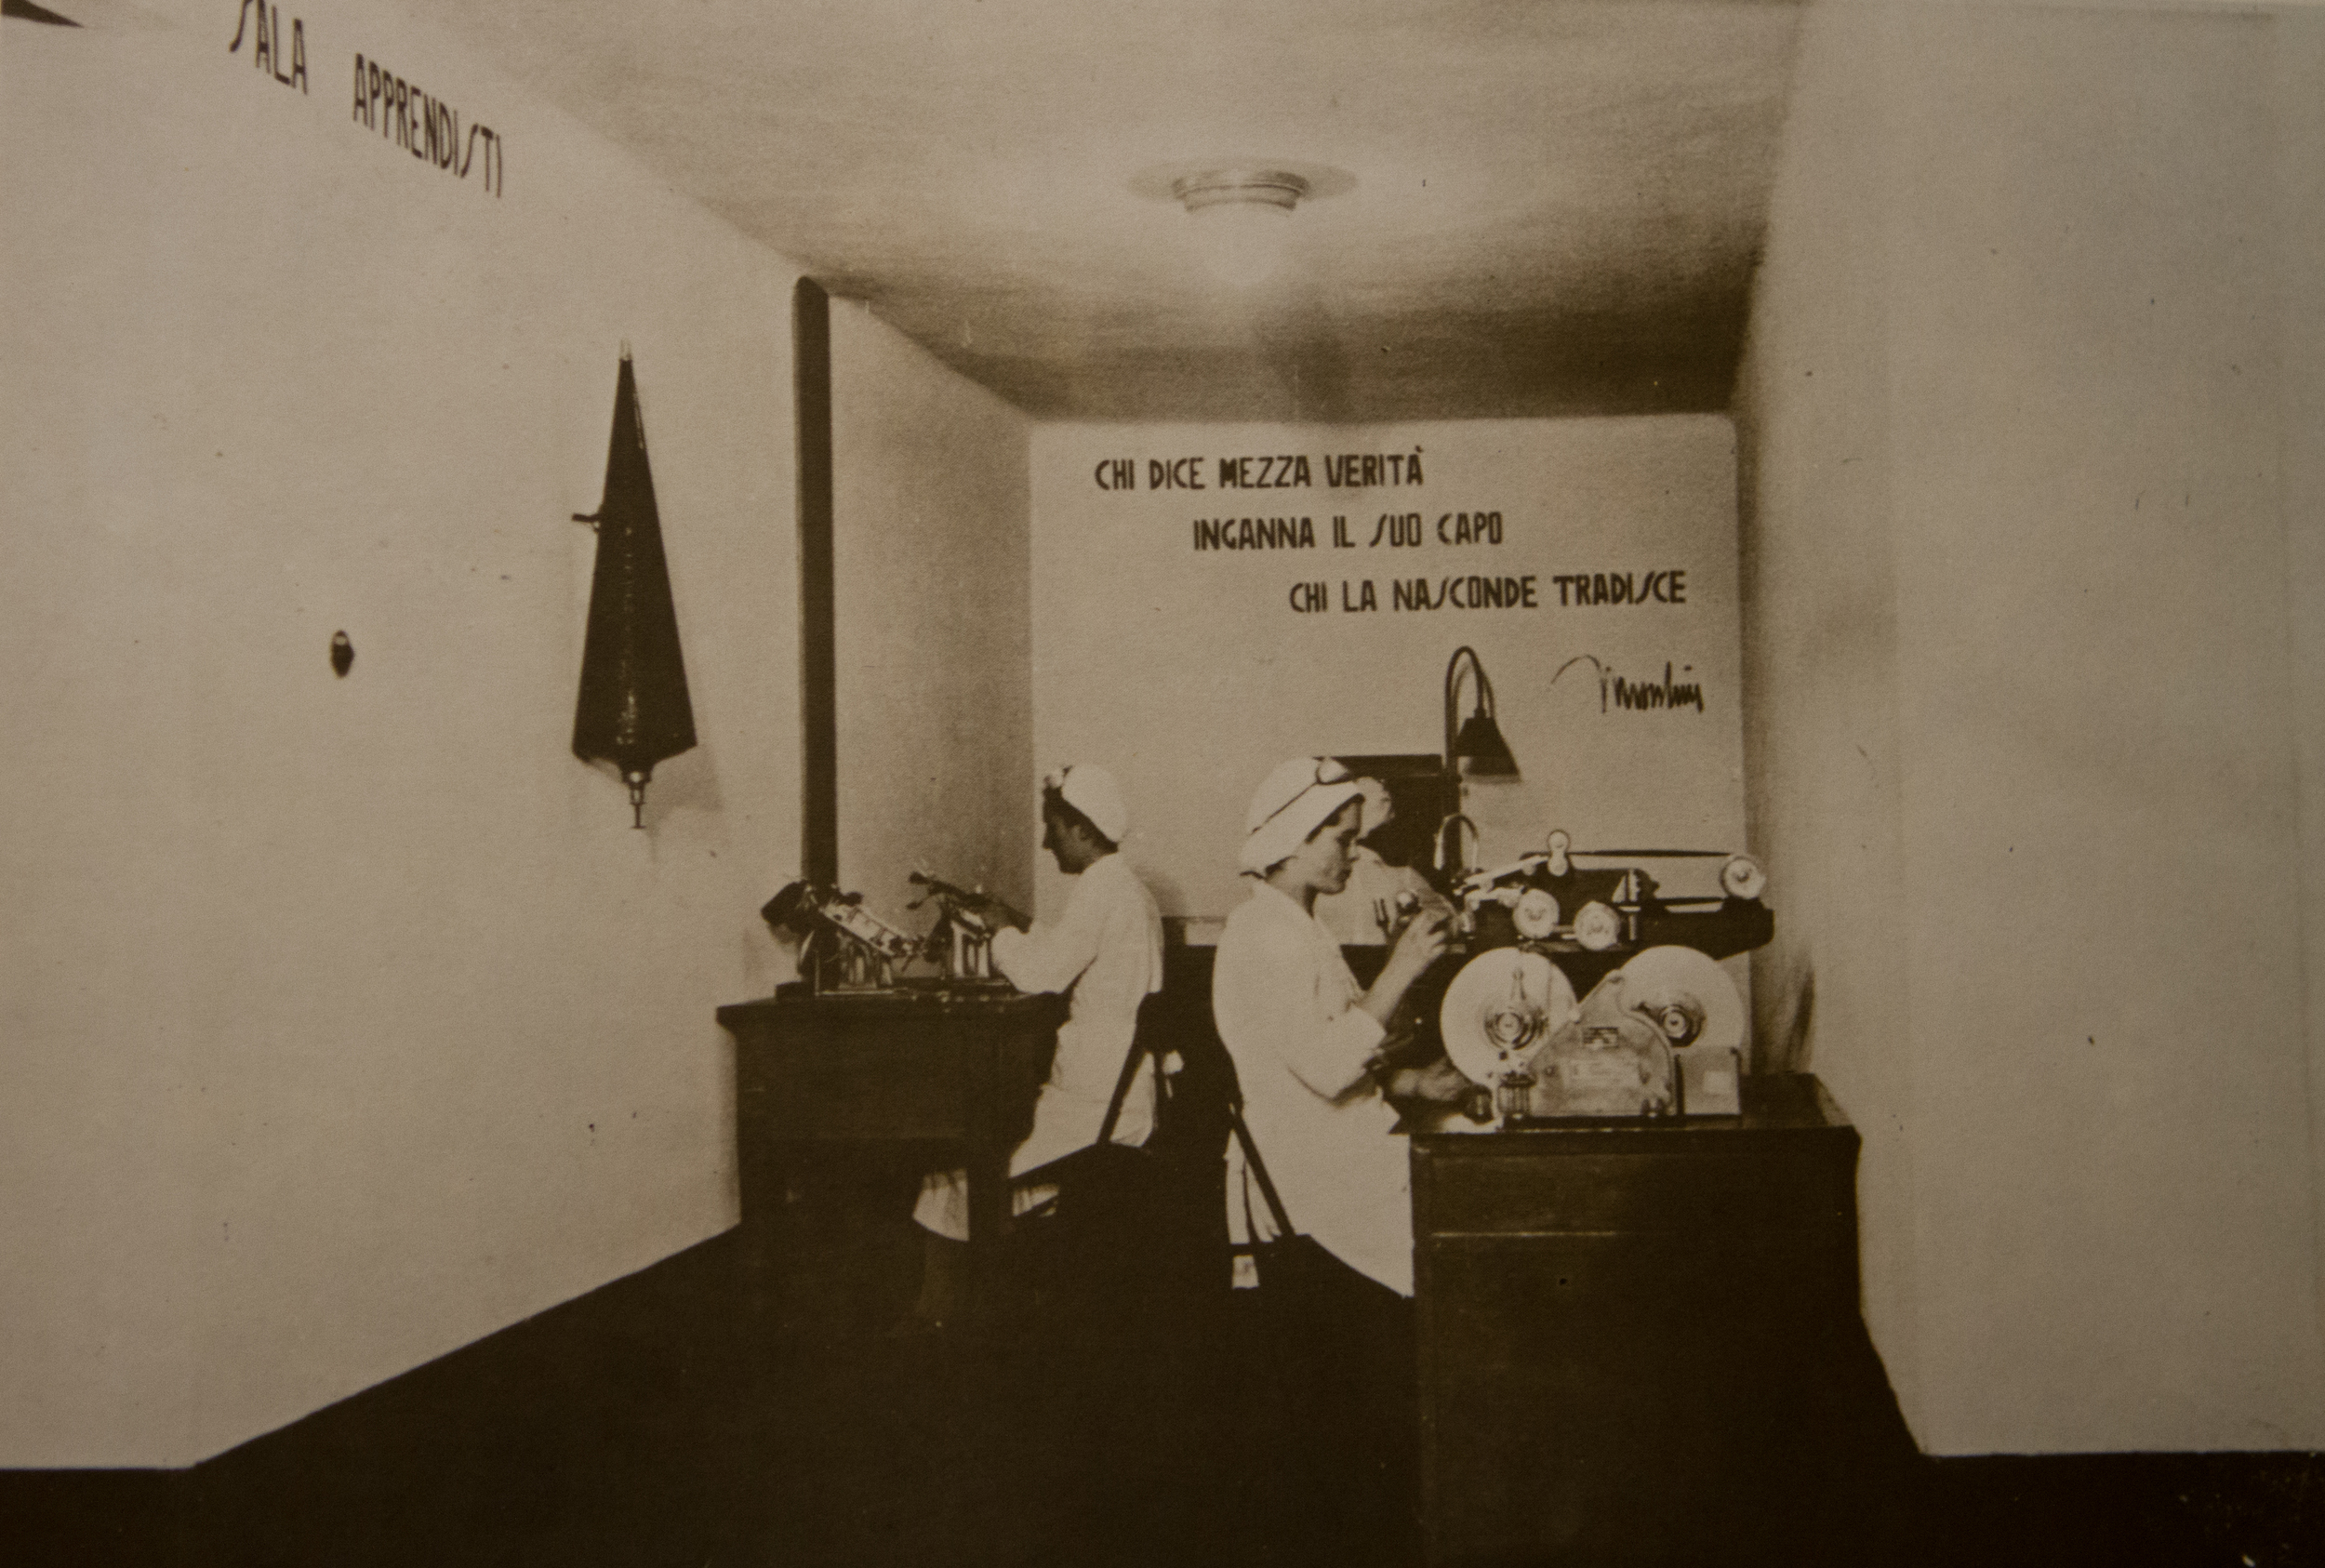 Fascist slogans on the wall inside a production room.